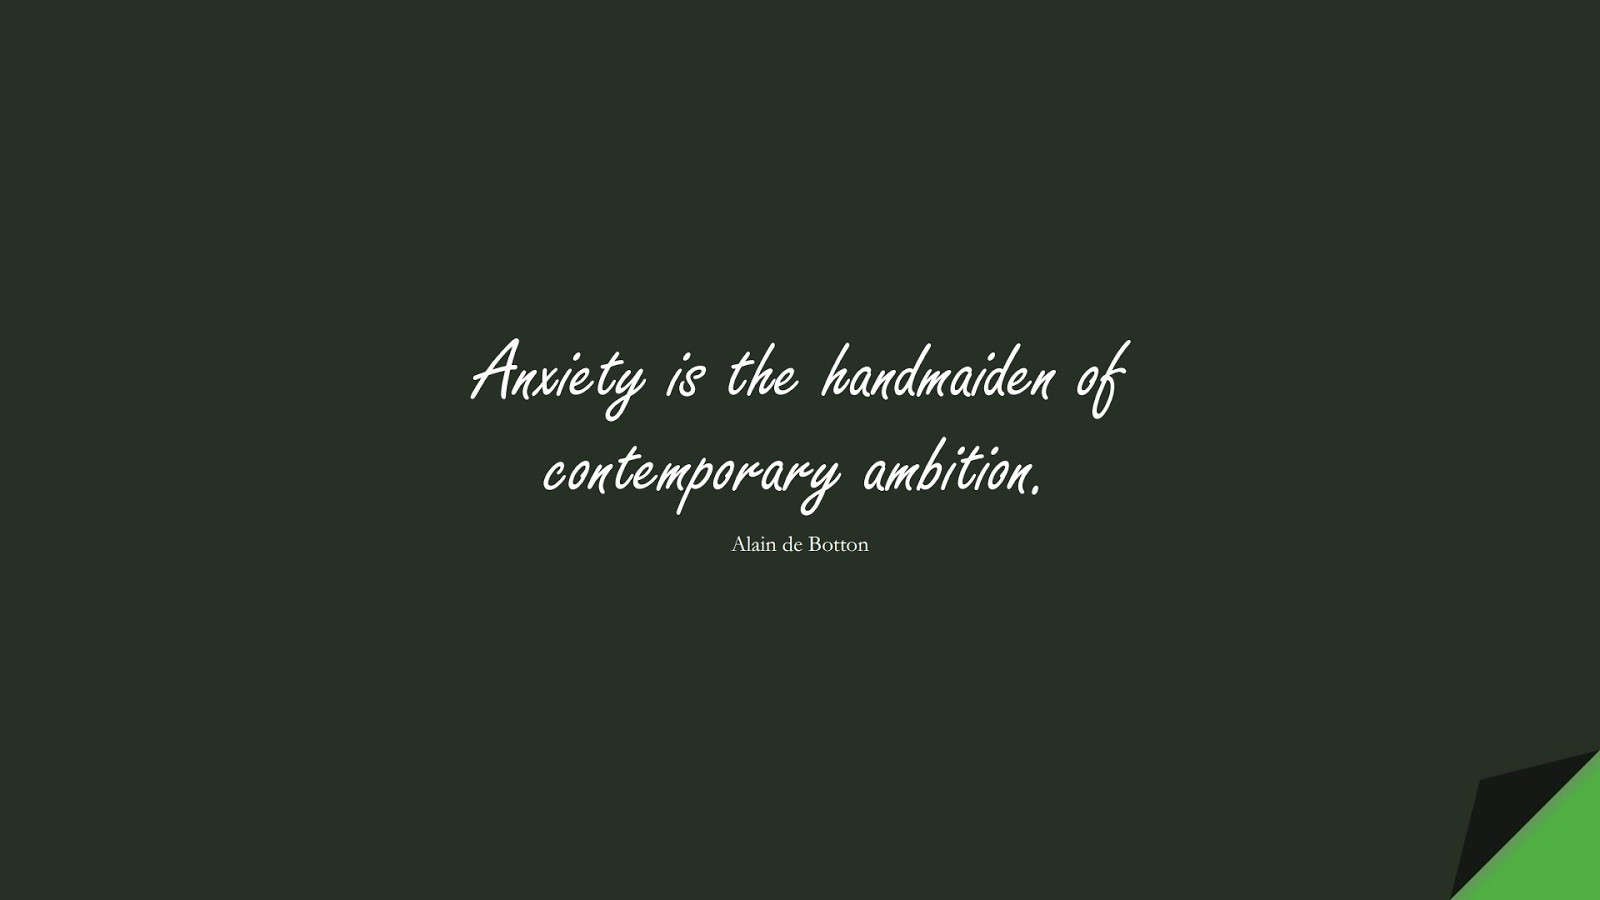 Anxiety is the handmaiden of contemporary ambition. (Alain de Botton);  #AnxietyQuotes